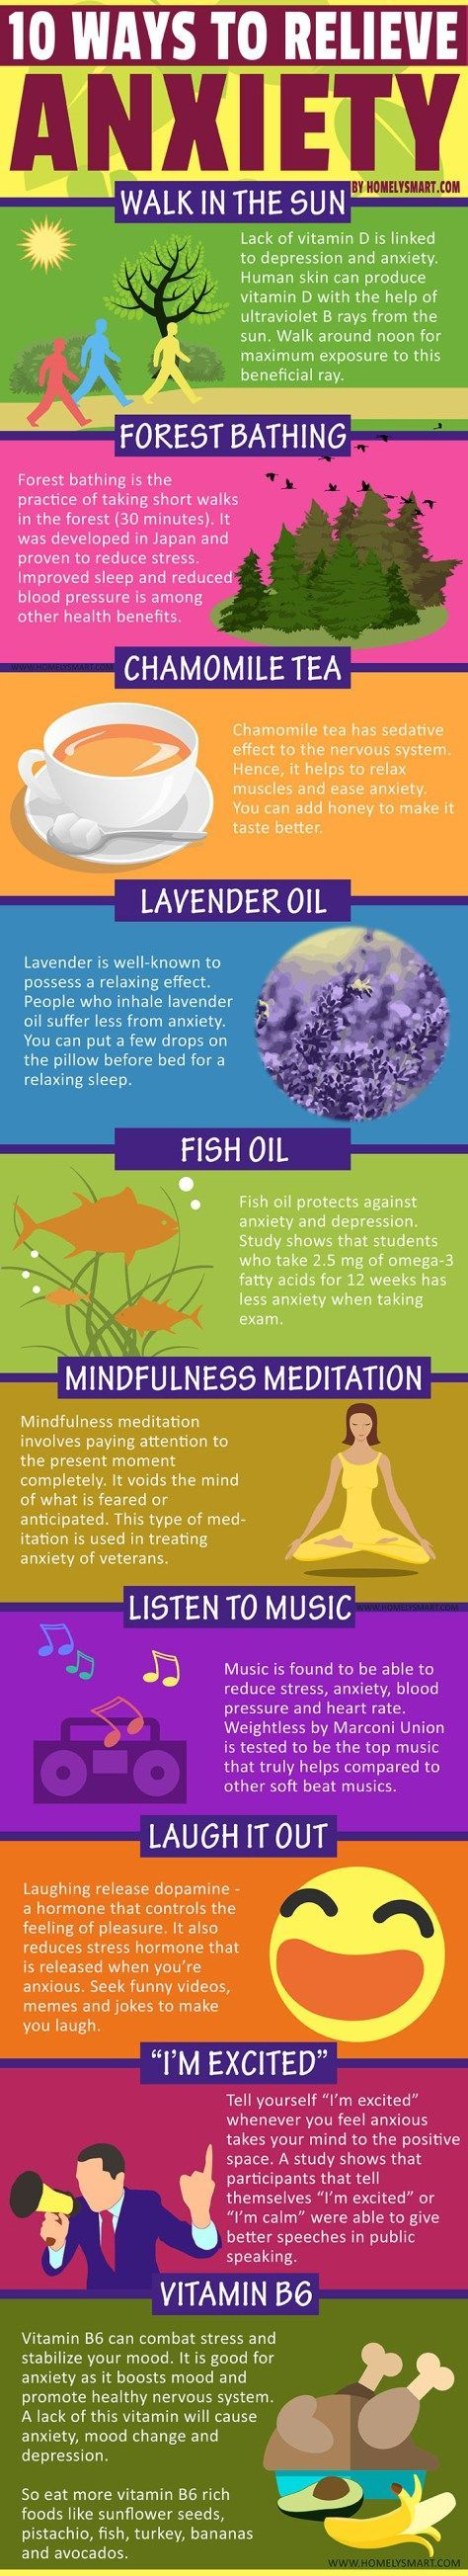 HomelySmart 10 ways to relieve anxiety, walk in the sun, forest bathing, chamomile tea, lavender oil, fish oil, mindfulness meditation, listen to music, laugh it out, i'm excited, vitamin b6